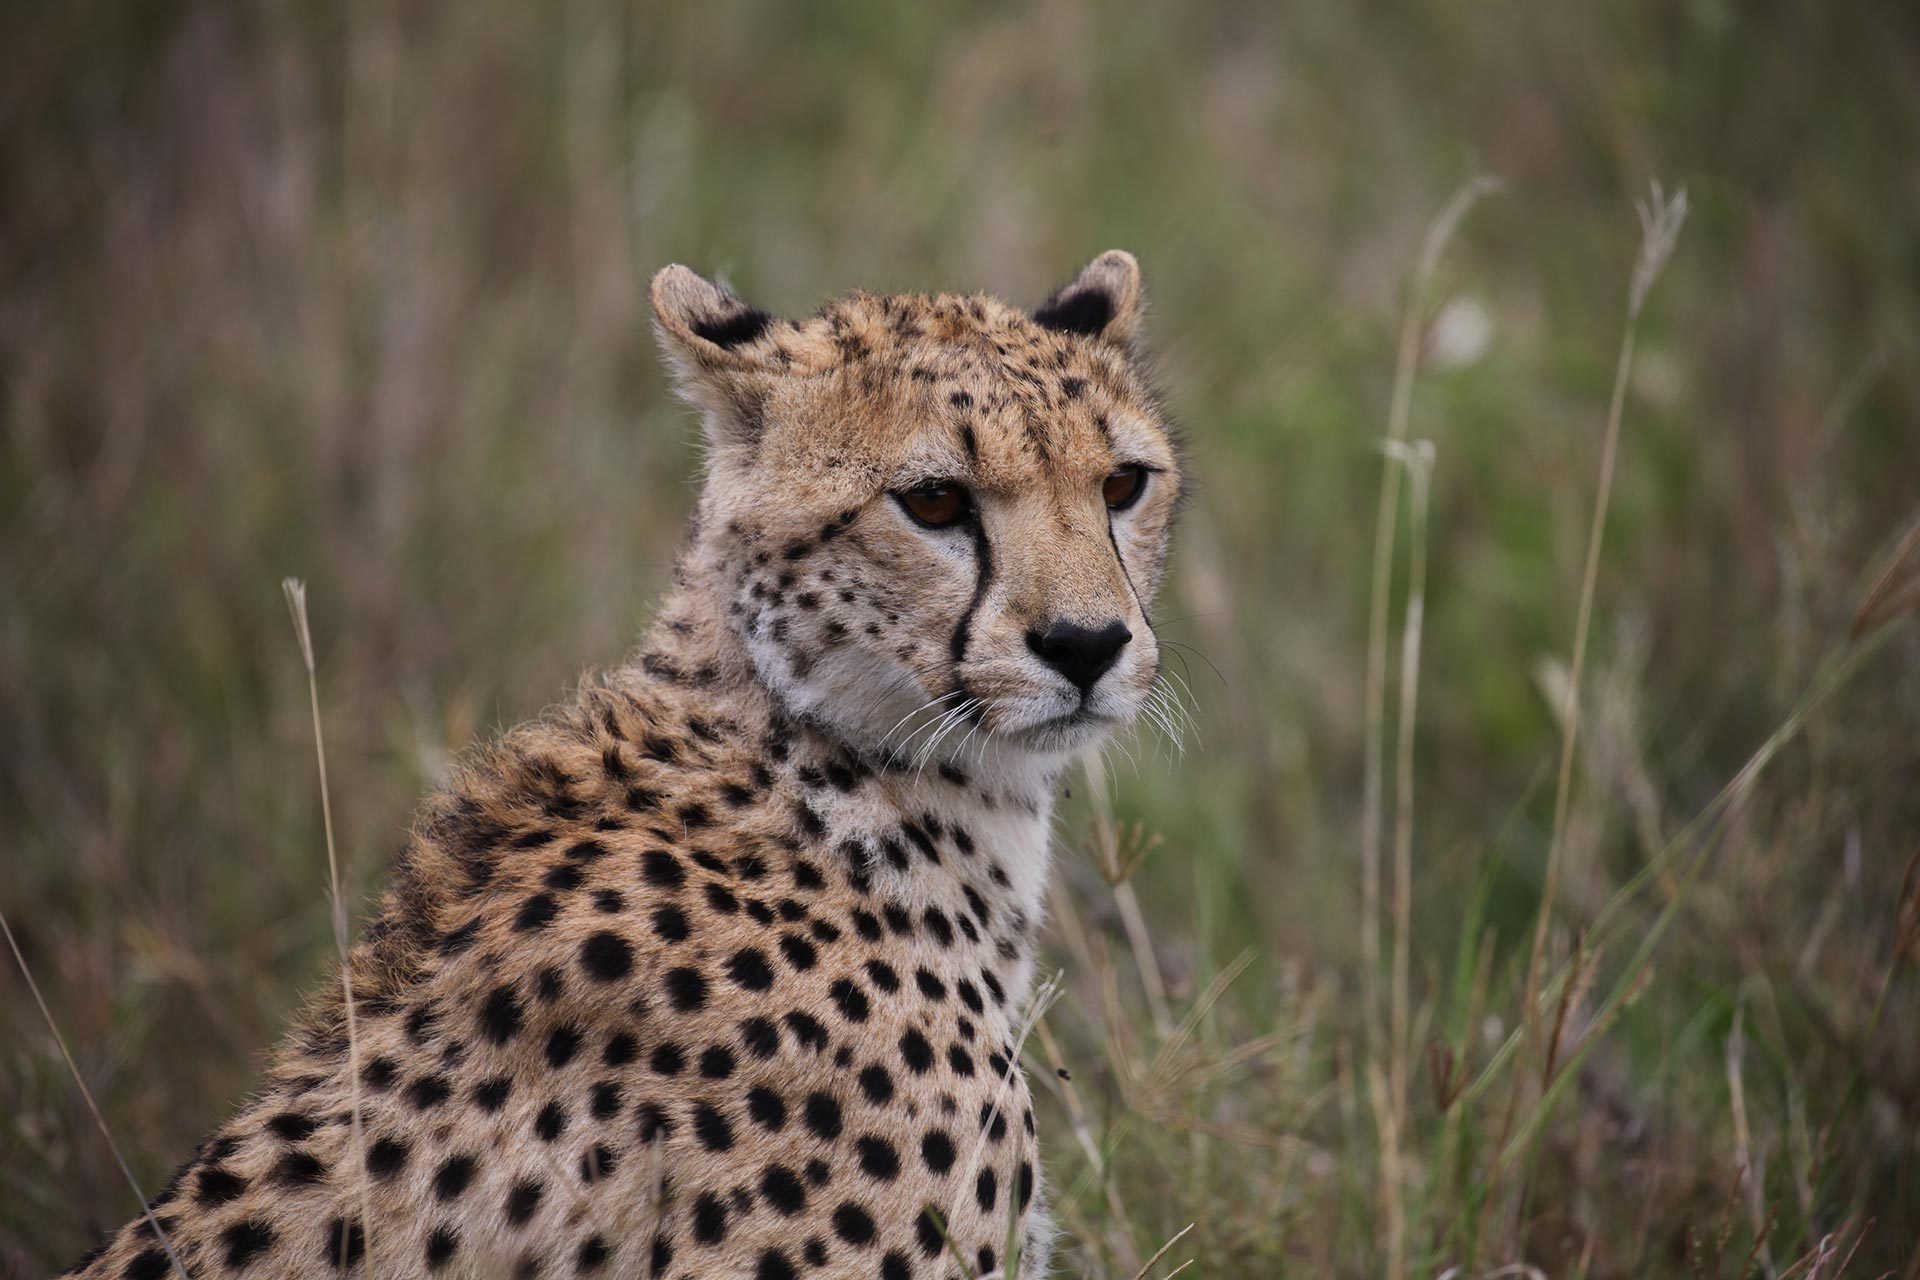 A cheetah assesses the situation.